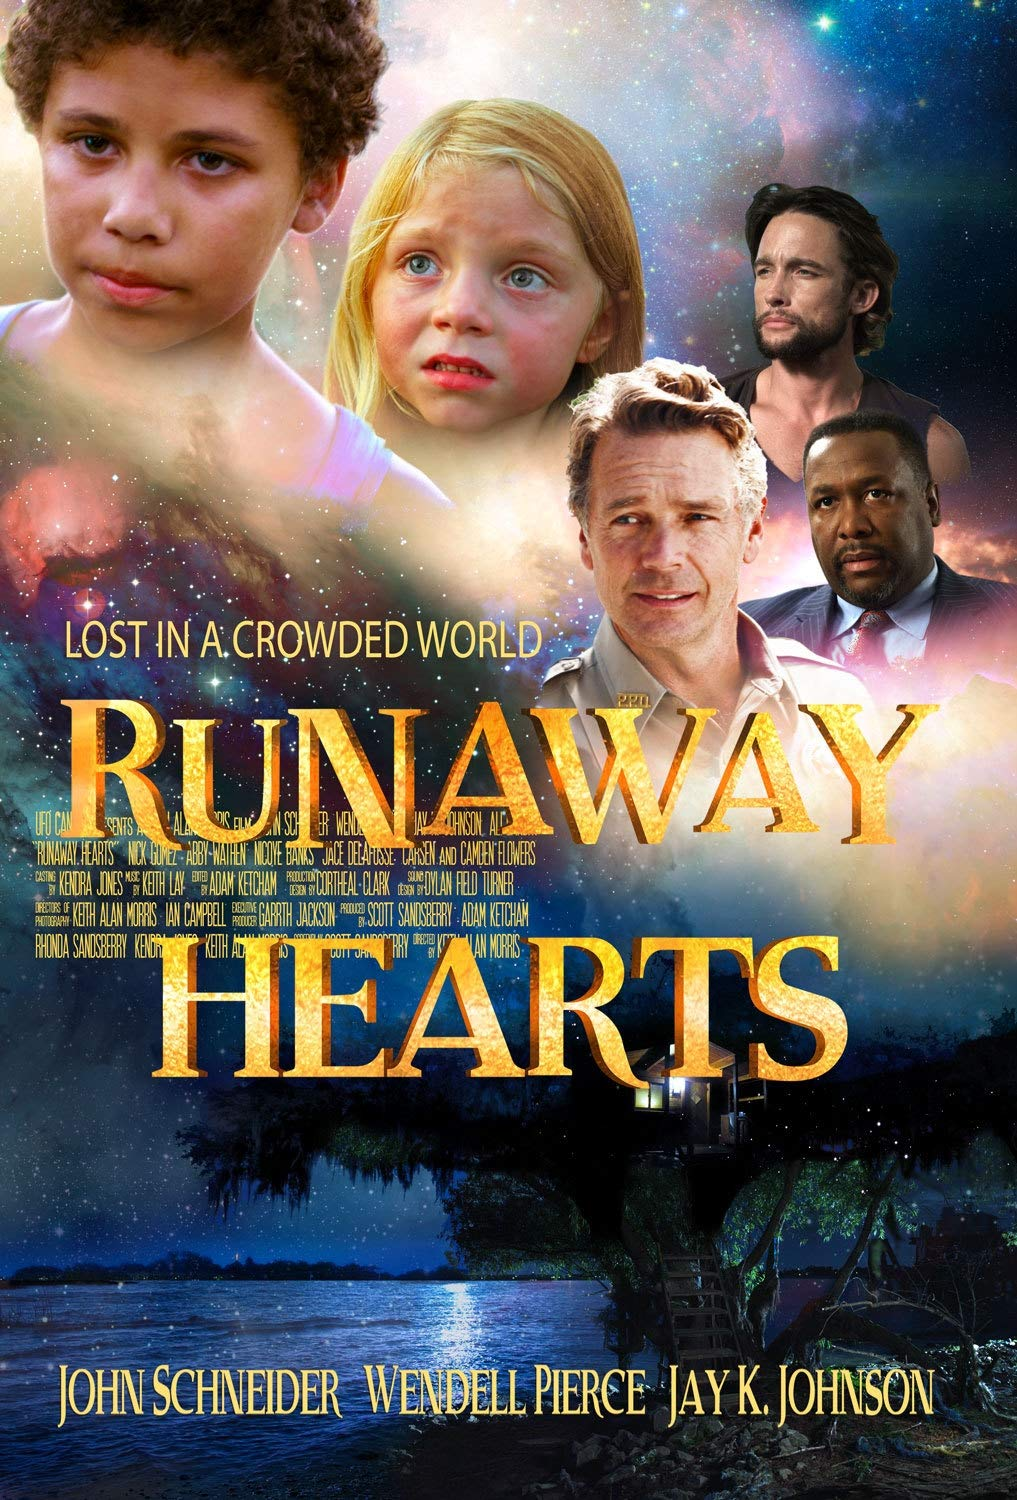 Amazon.com: Runaway Hearts DVD: Keith Alan Morris, John Schneider ...